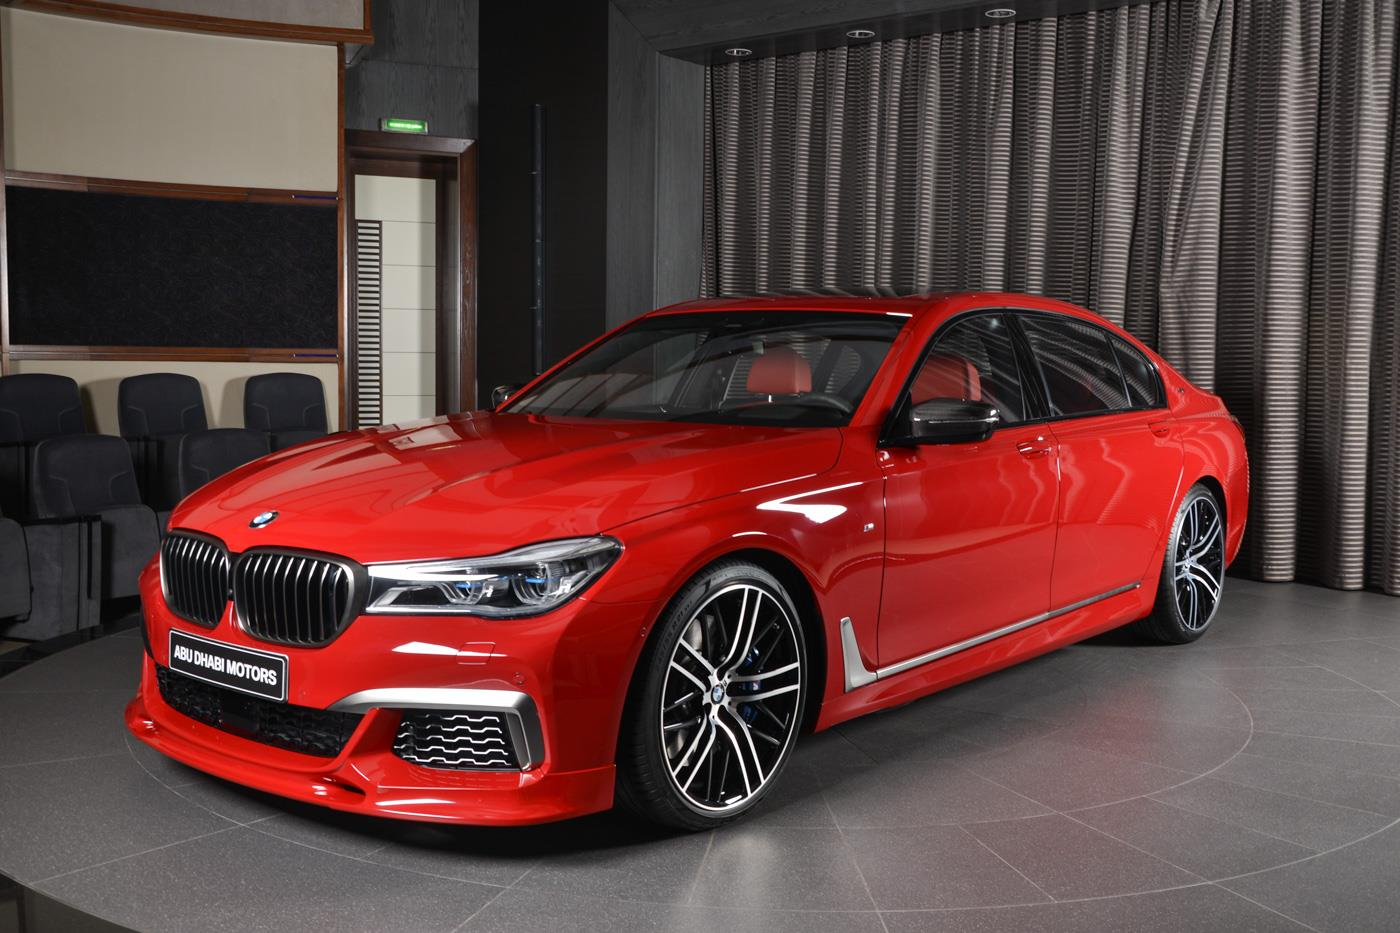 Imola Red Bmw M760li In Abu Dhabi Has Everything Autoevolution